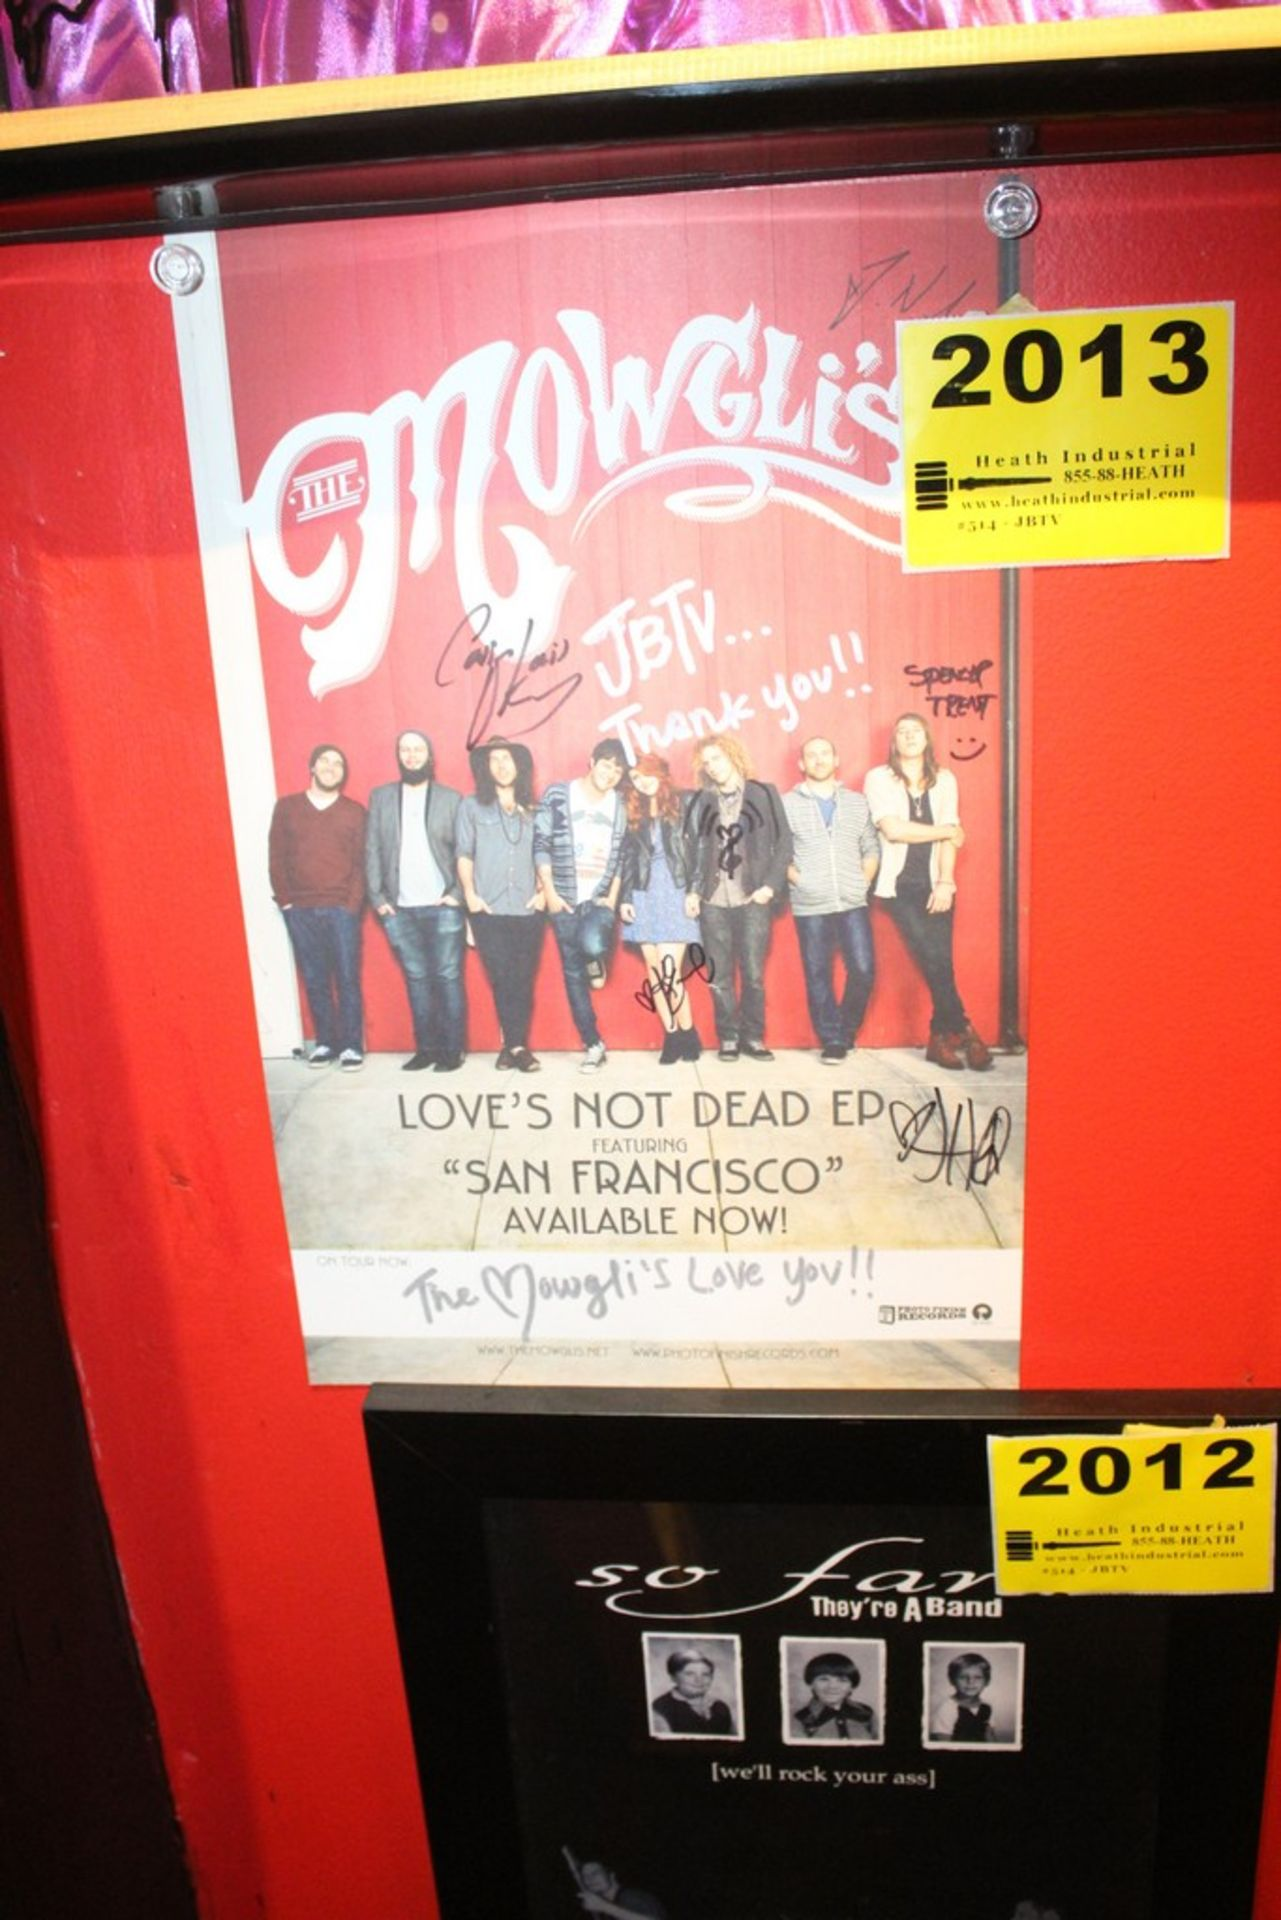 Lot 2013 - Mowgli's Signed Poster